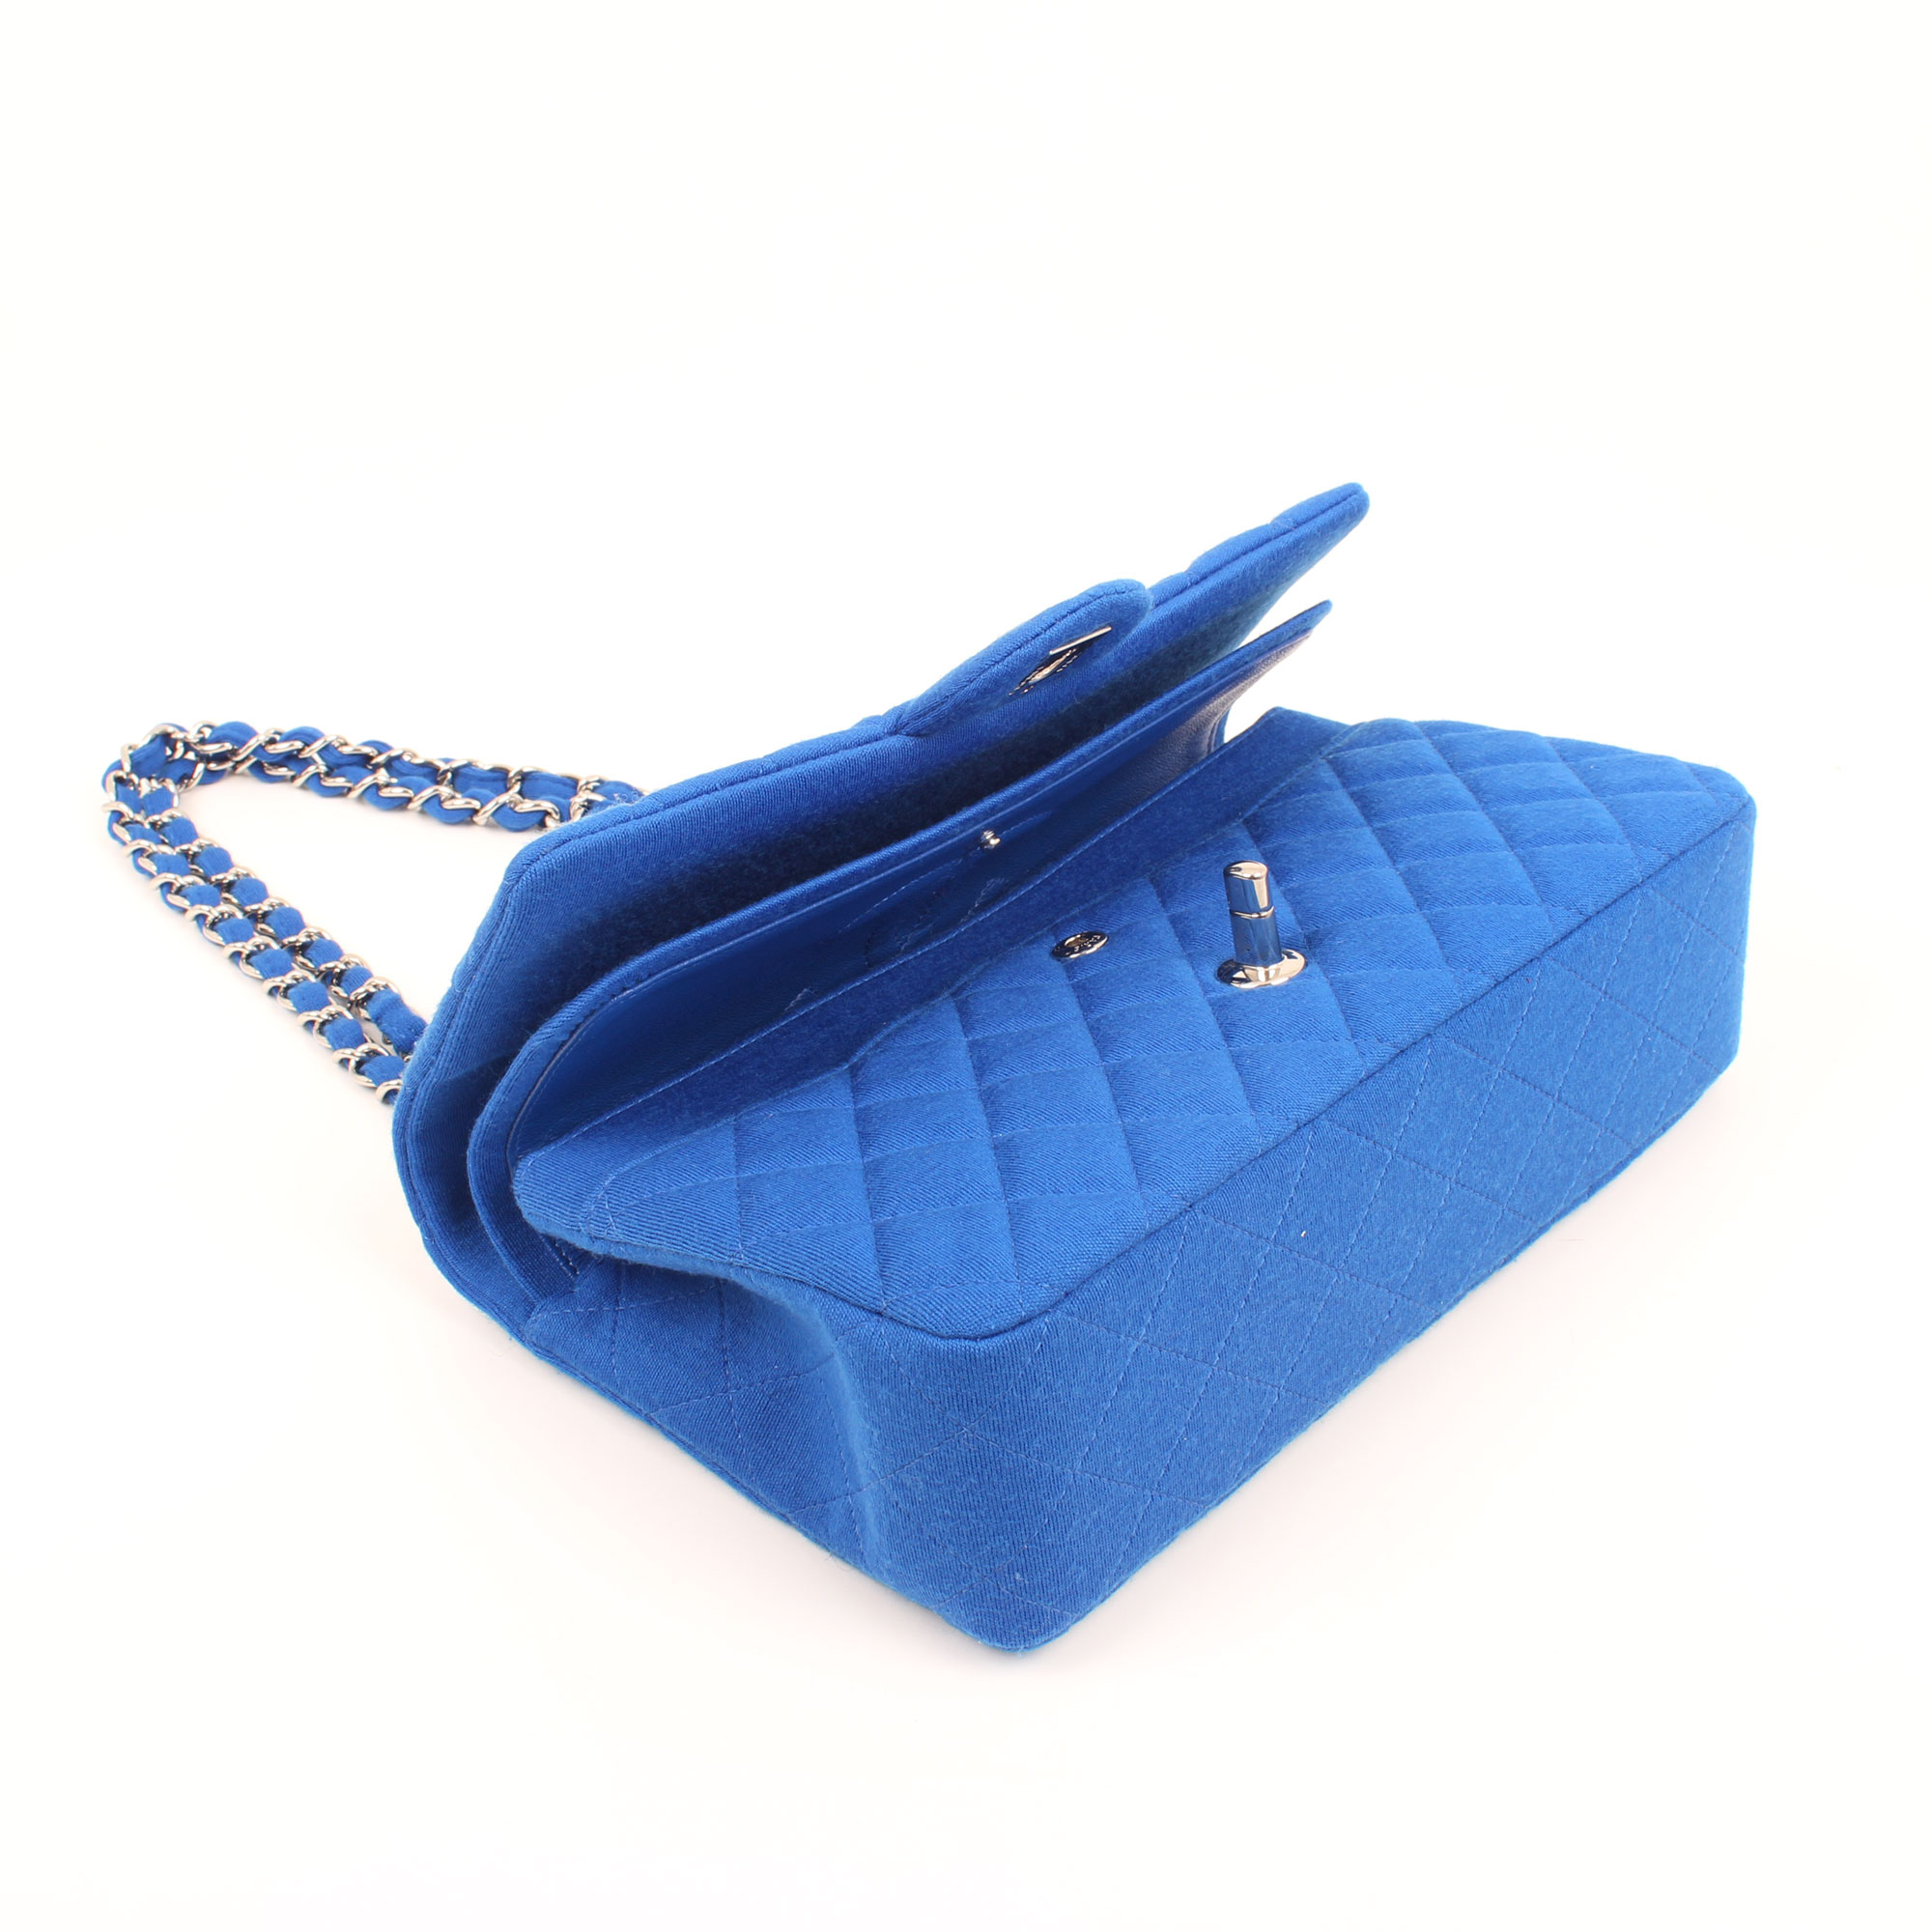 2b9811bf4381 ... quilted timeless double flap bag. Imagen de los extras del bolso chanel  classic flap jersey azul. Imagen ...